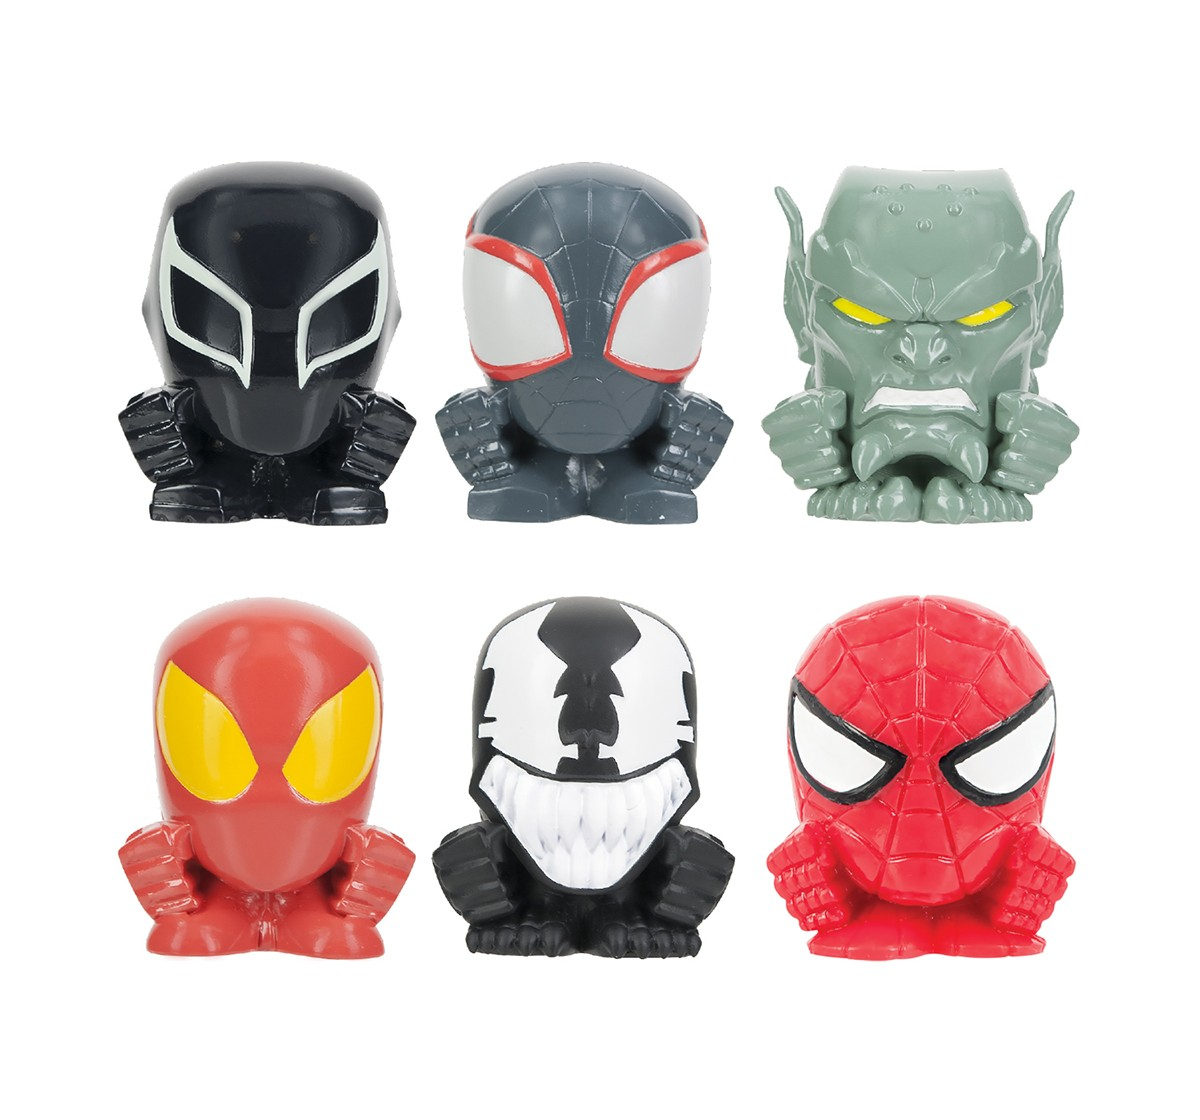 Mash'Ems Squishy Spiderman Sinister 6 S1 Toy Figures for Kids age 4Y+